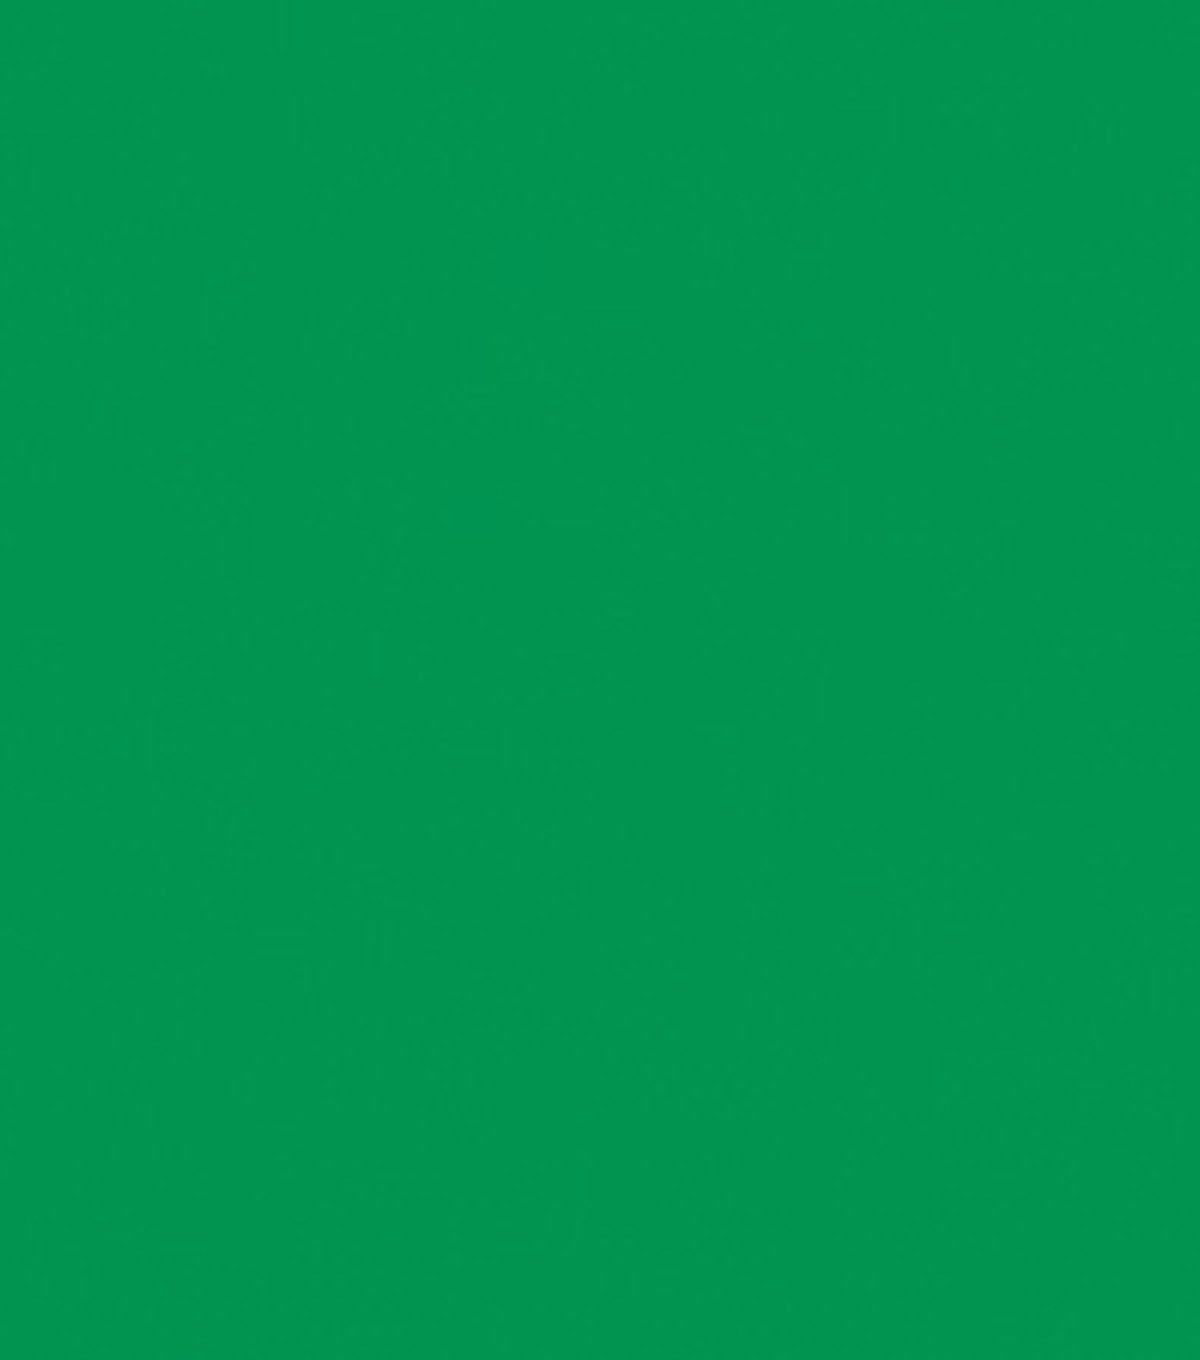 Winsor & Newton Galeria 2 fl. oz. Acrylic Paint Tube, Permanent Green Deep